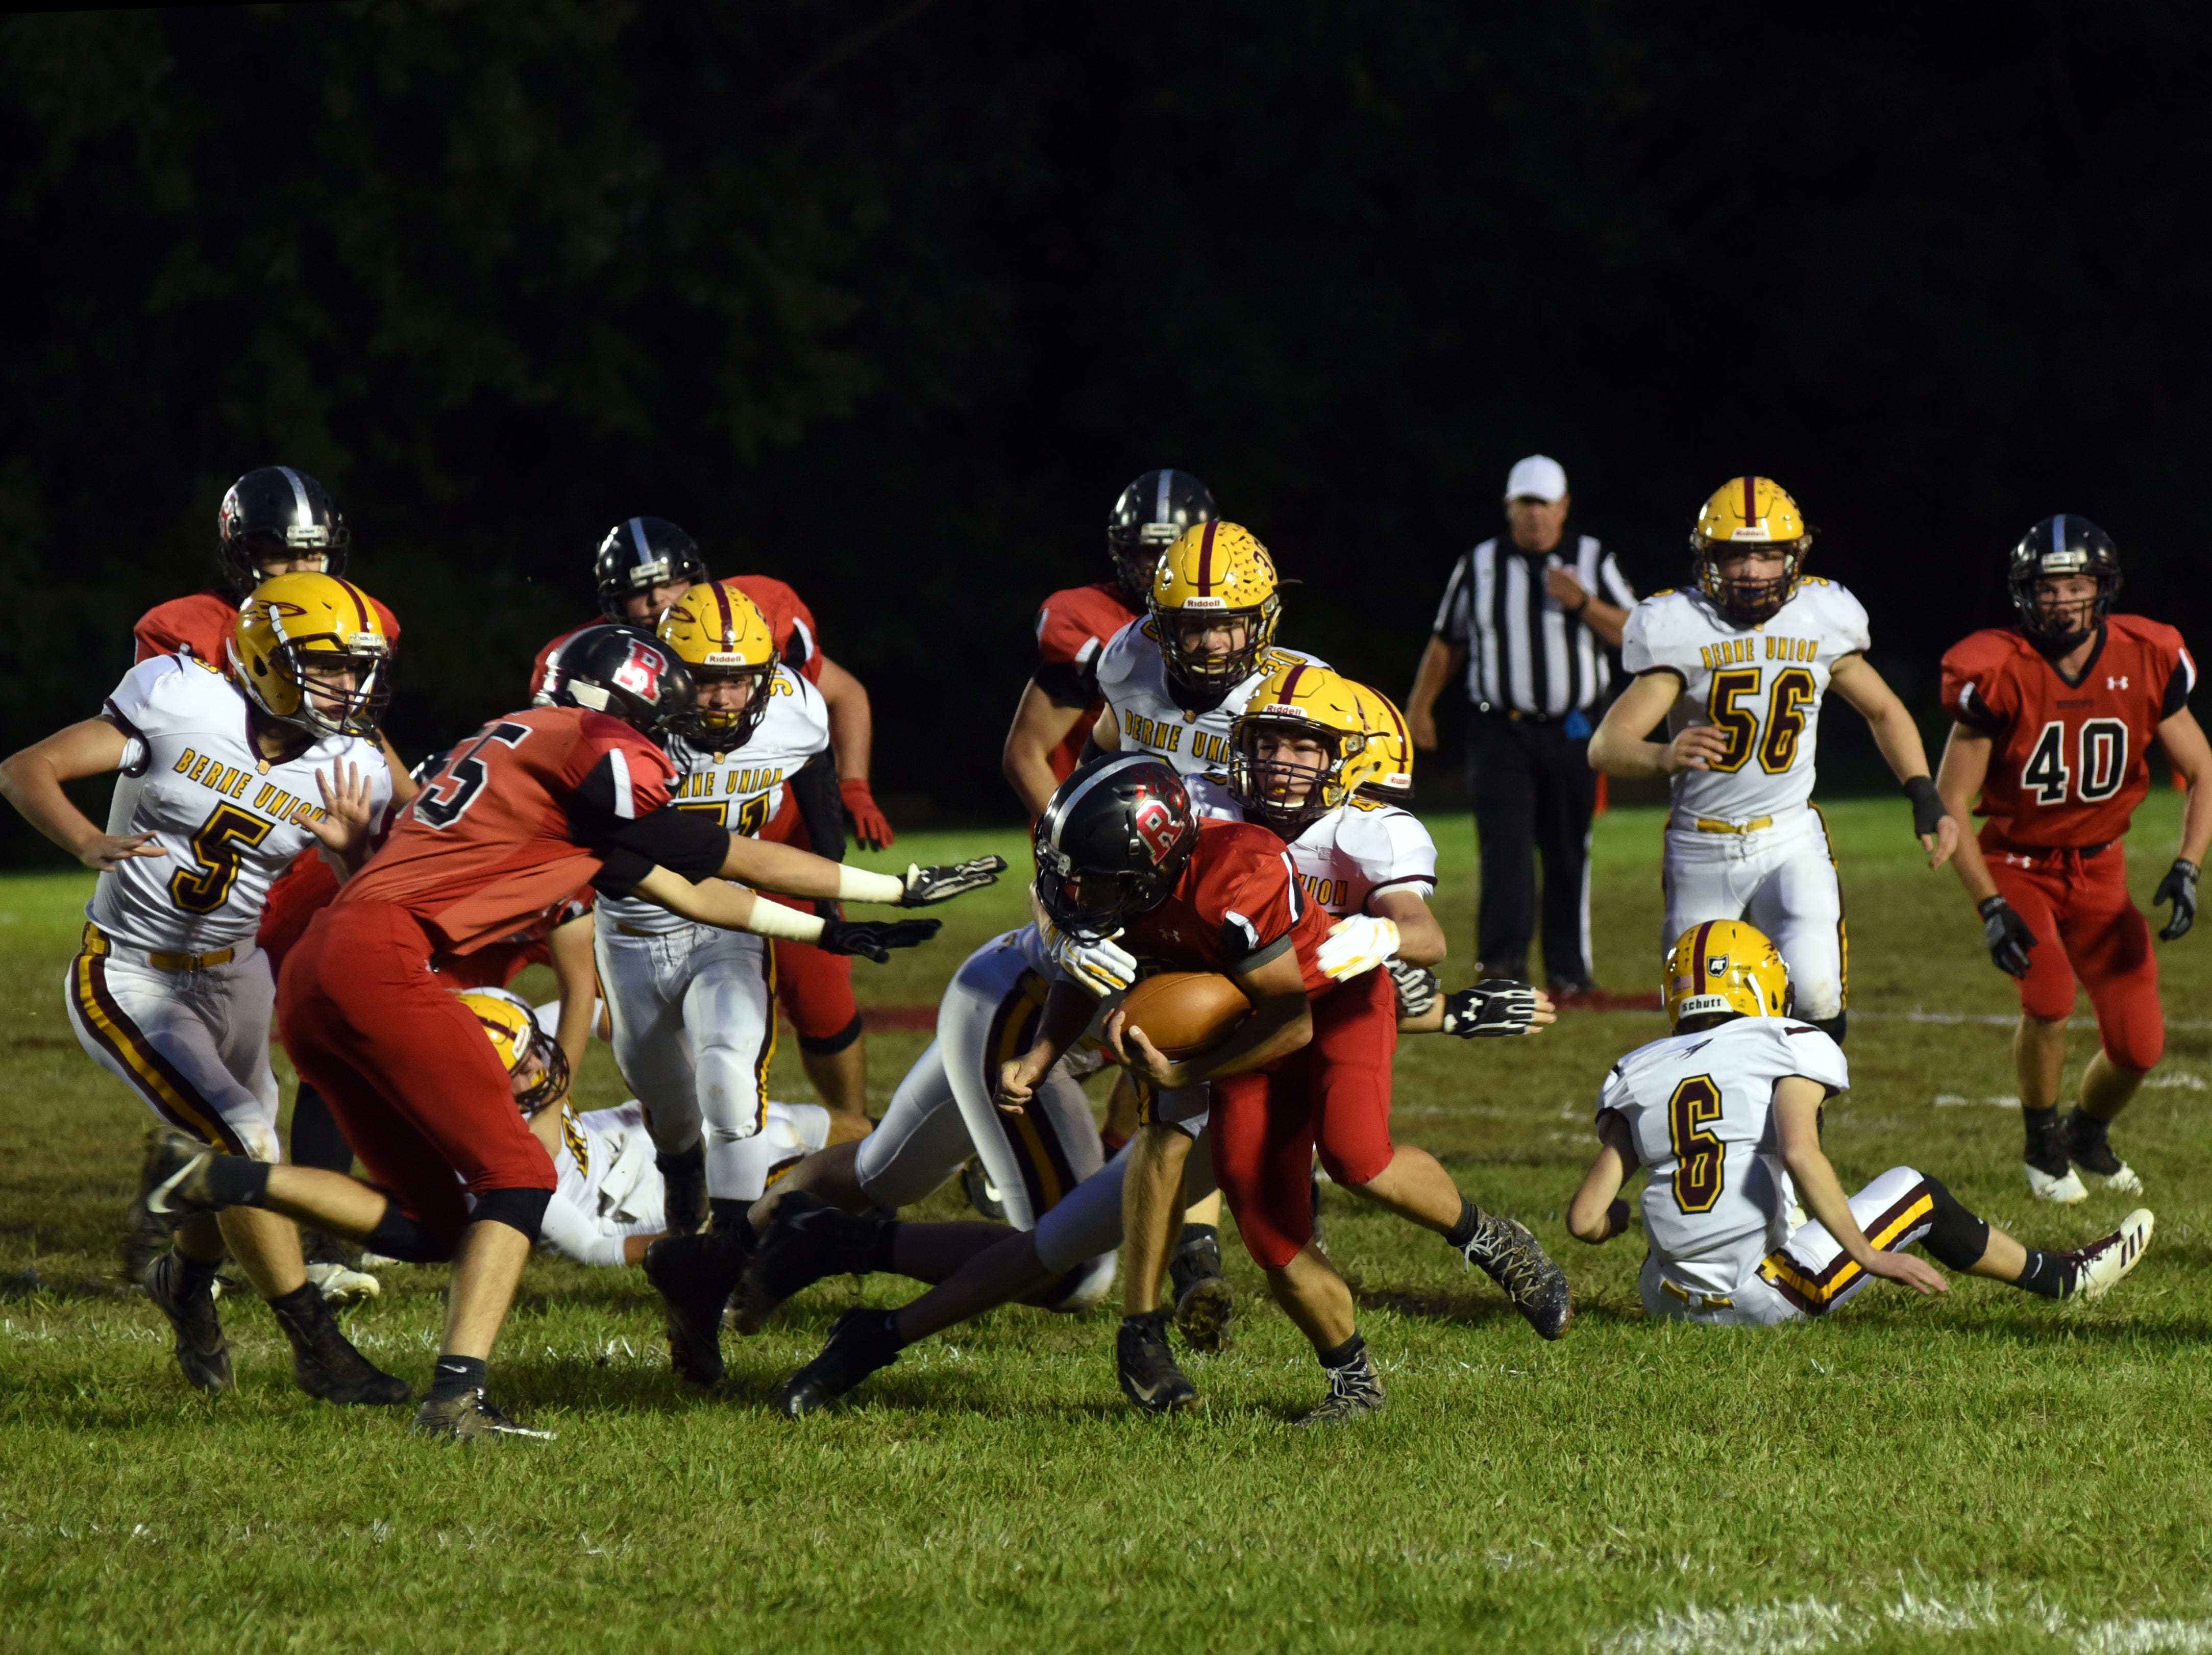 Rosecrans' Carter Dosch fights for extra yards against Berne Union in Friday's 41-14 loss.